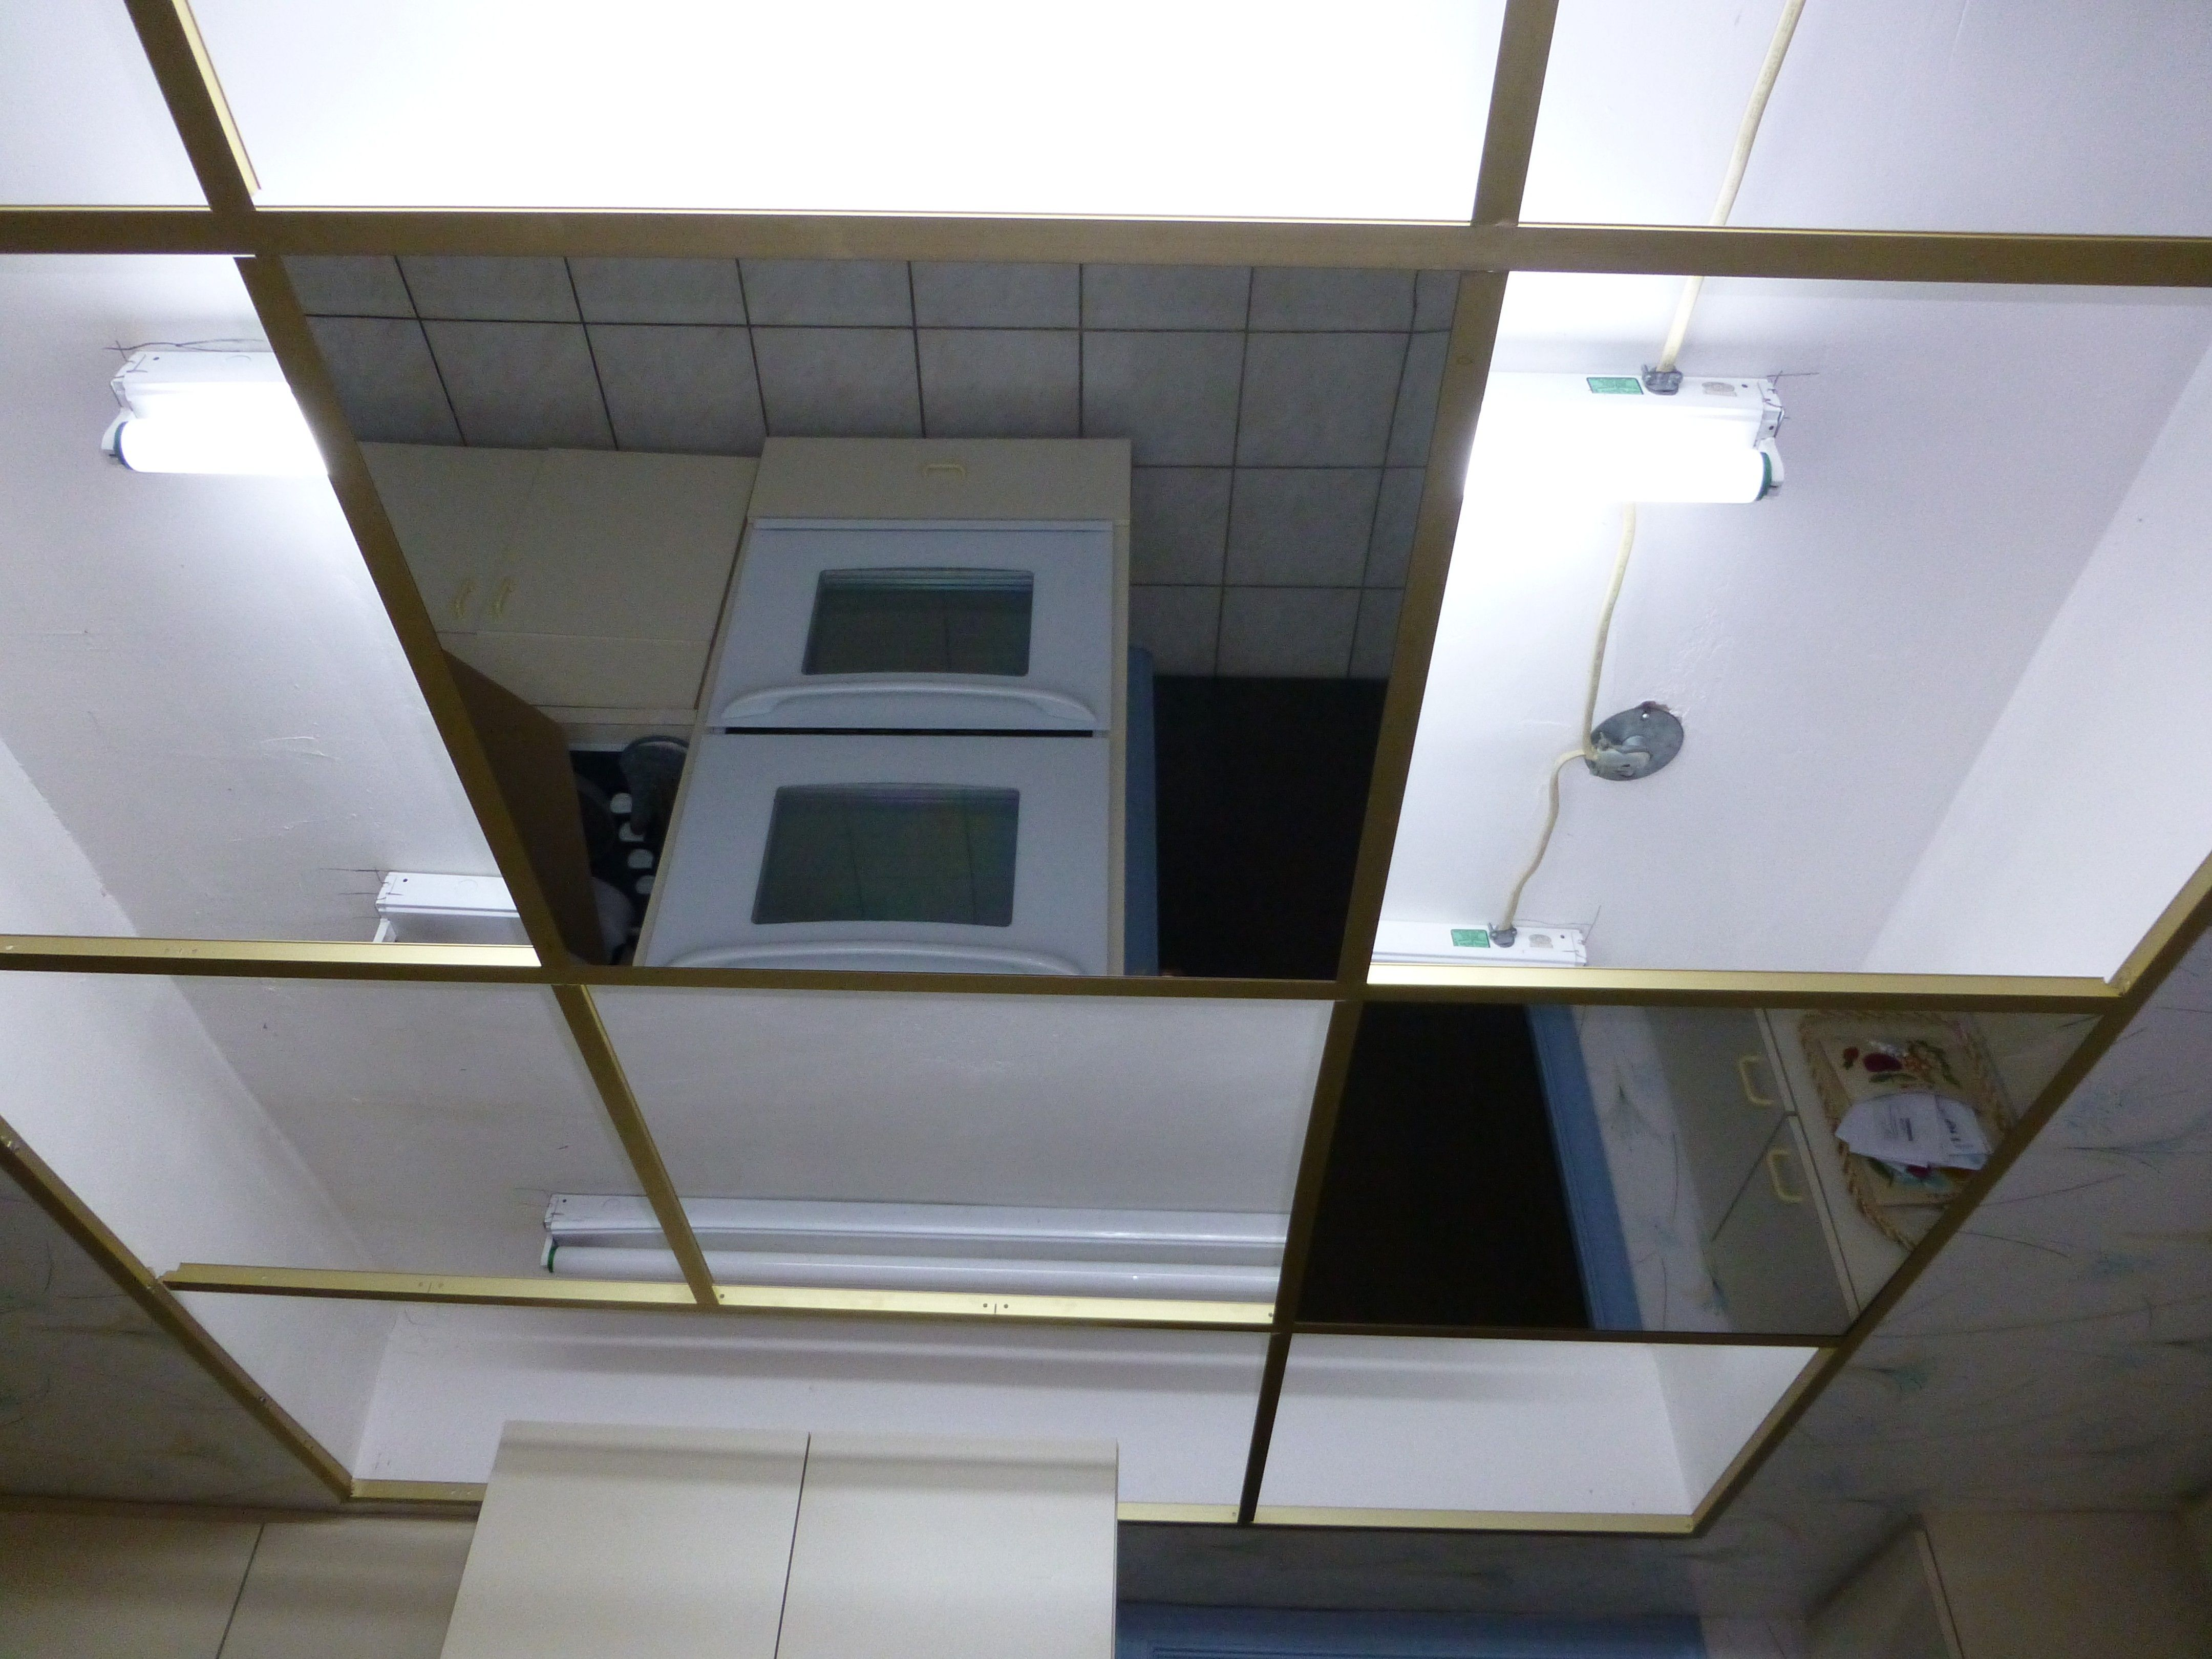 Glass mirror ceiling tiles